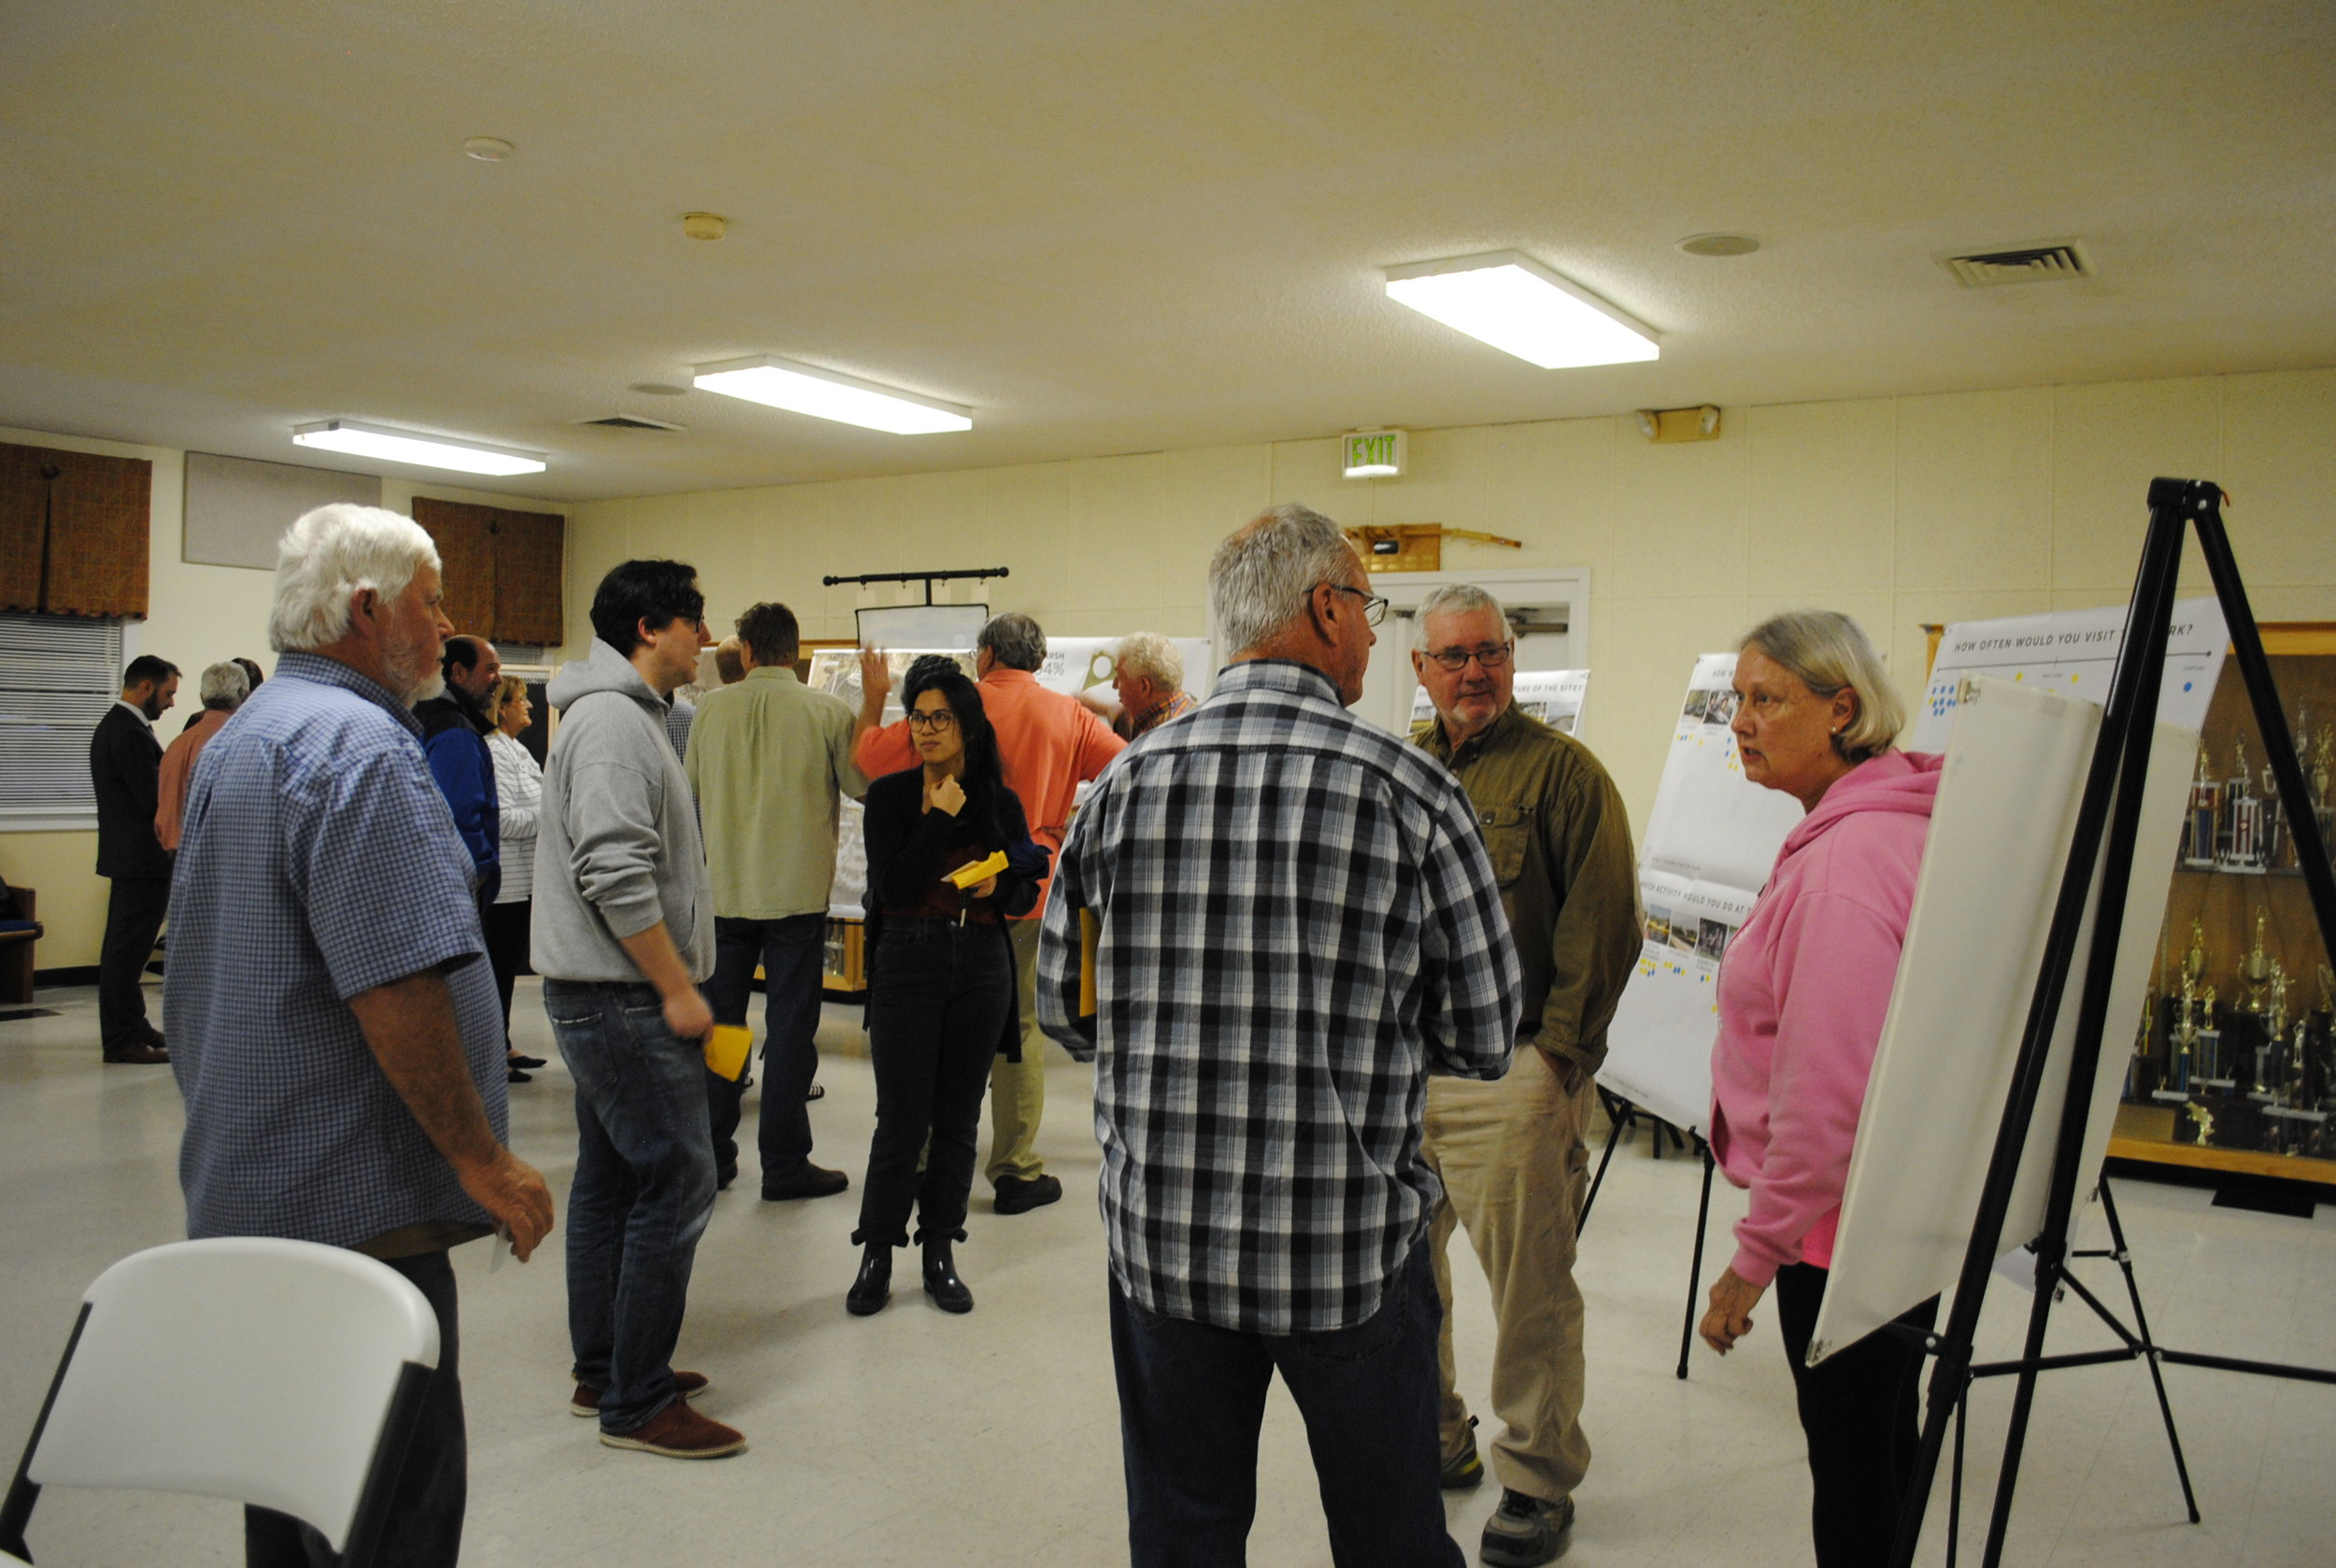 Citizens discuss the park at the Public Meeting on February 28, 2019.